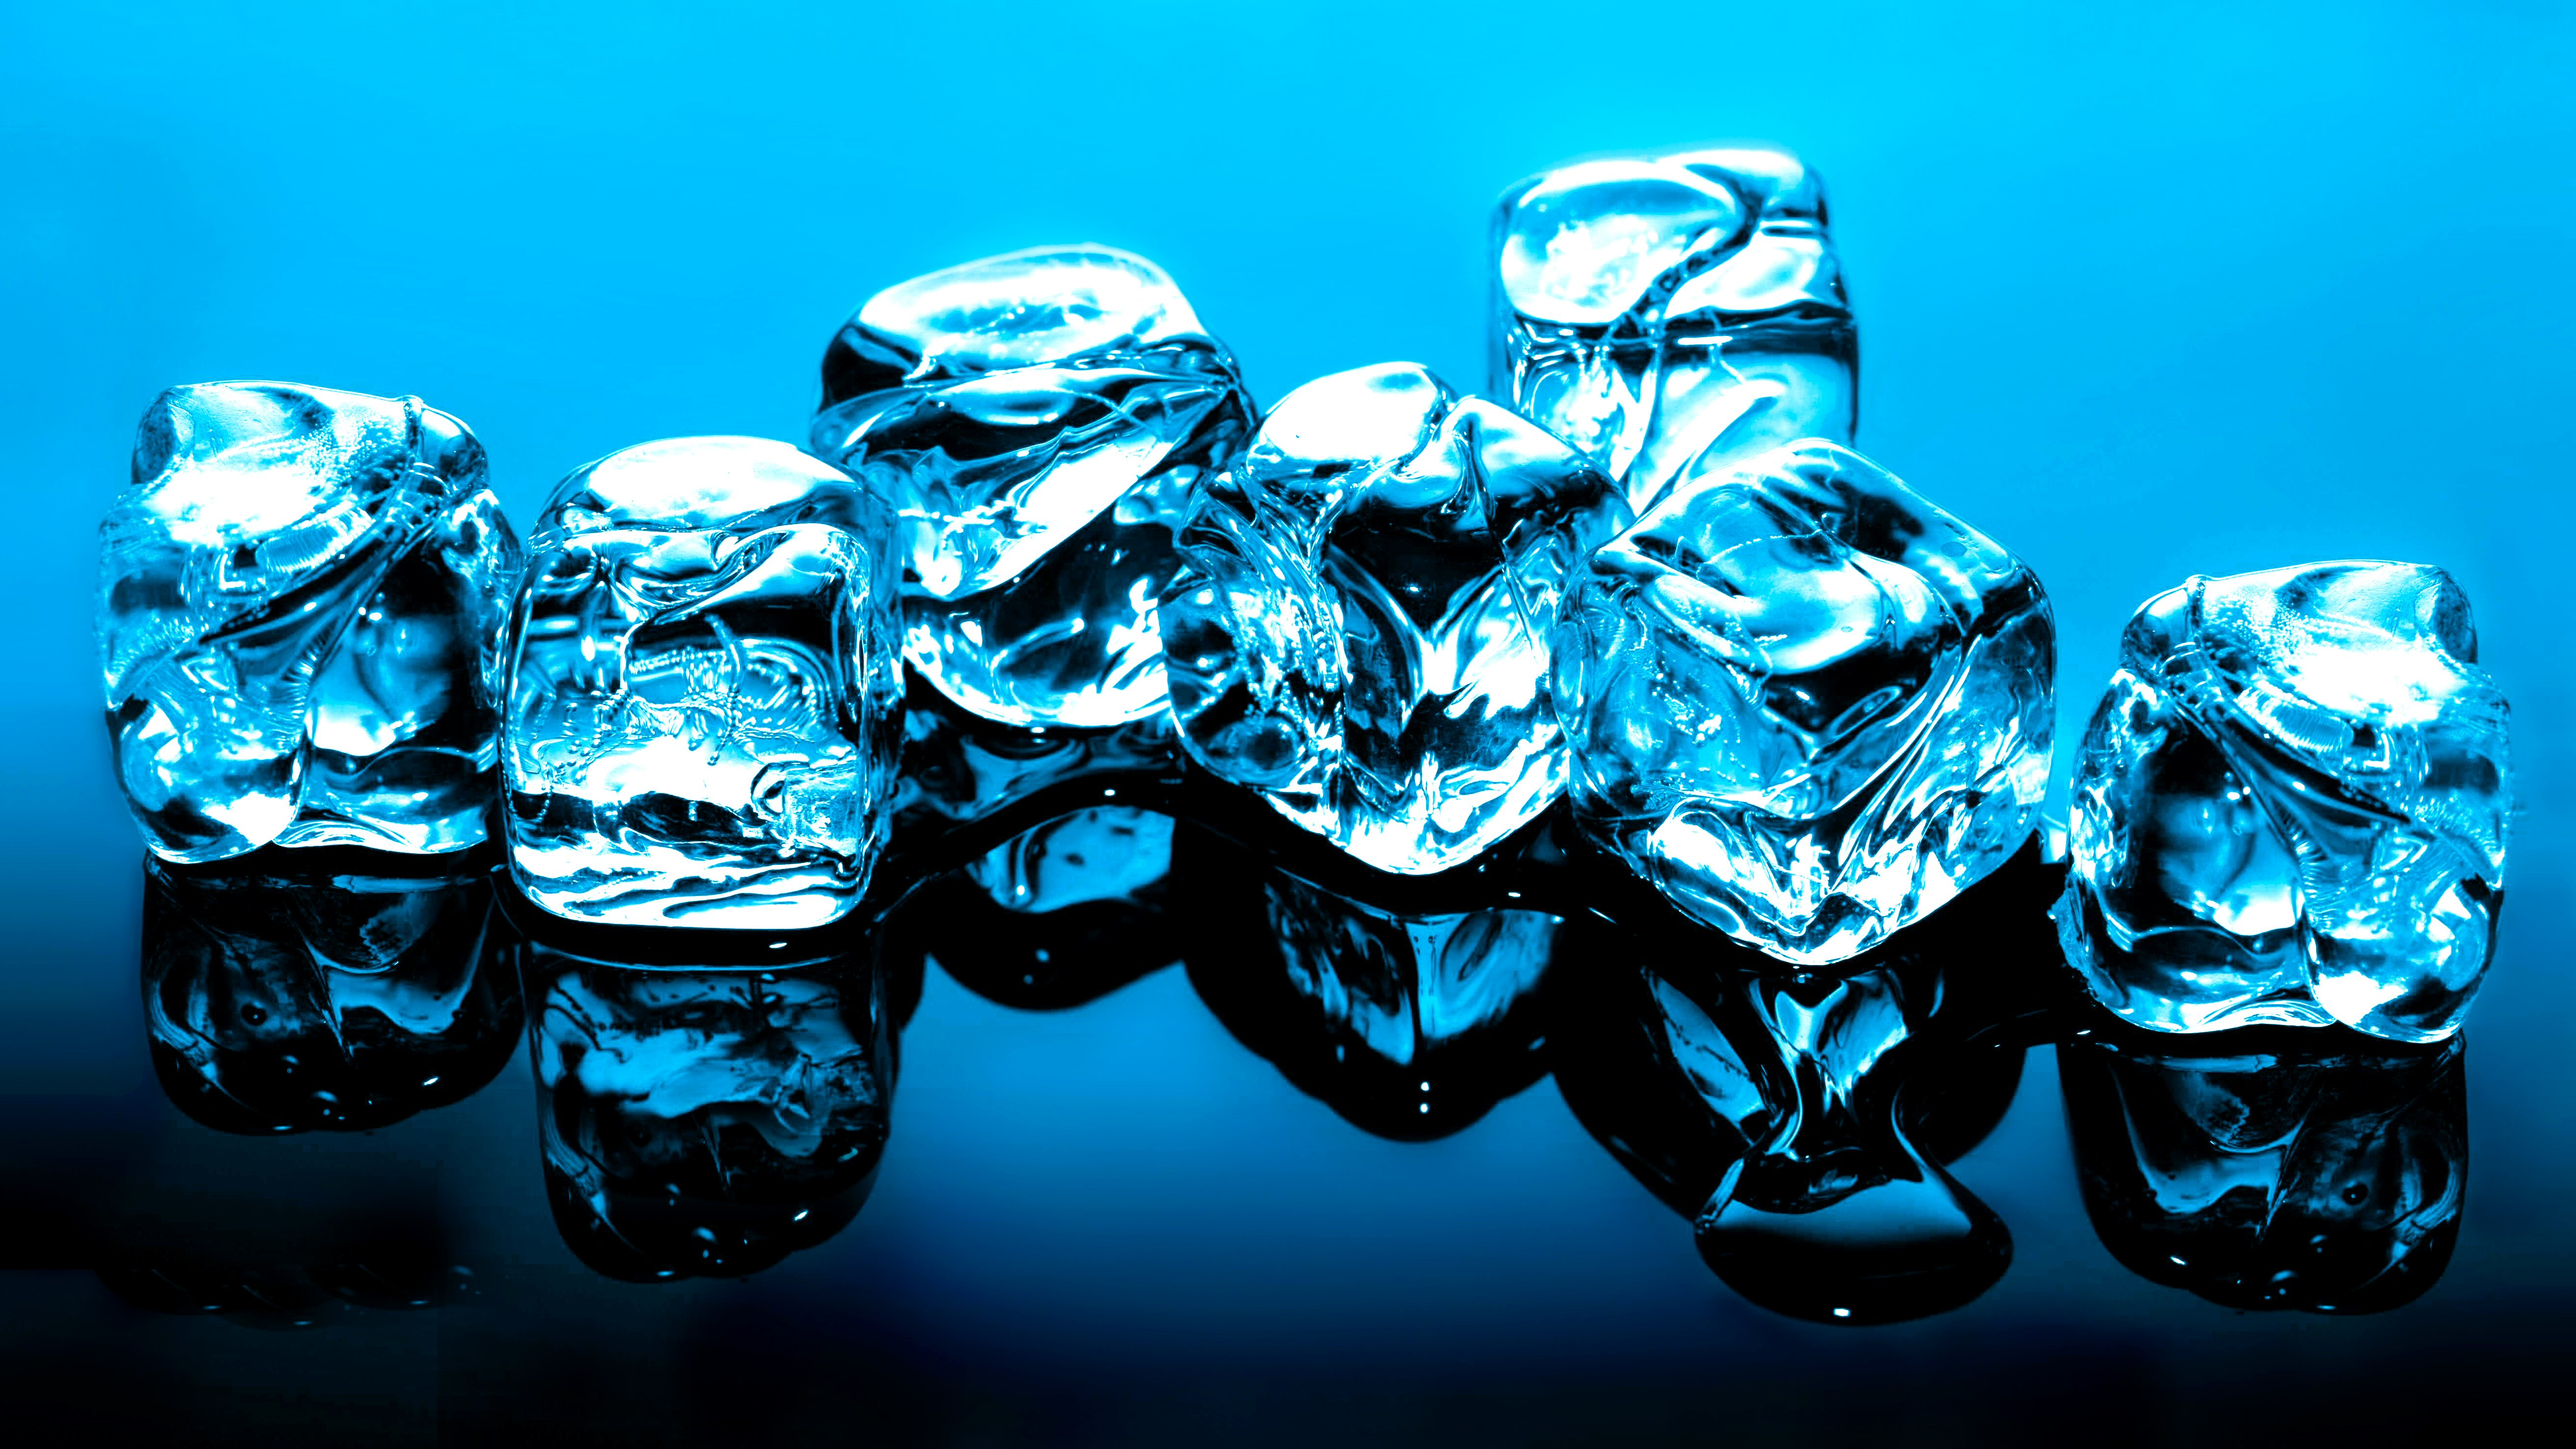 18 Ice Cube HD Wallpapers Backgrounds 5253x2955